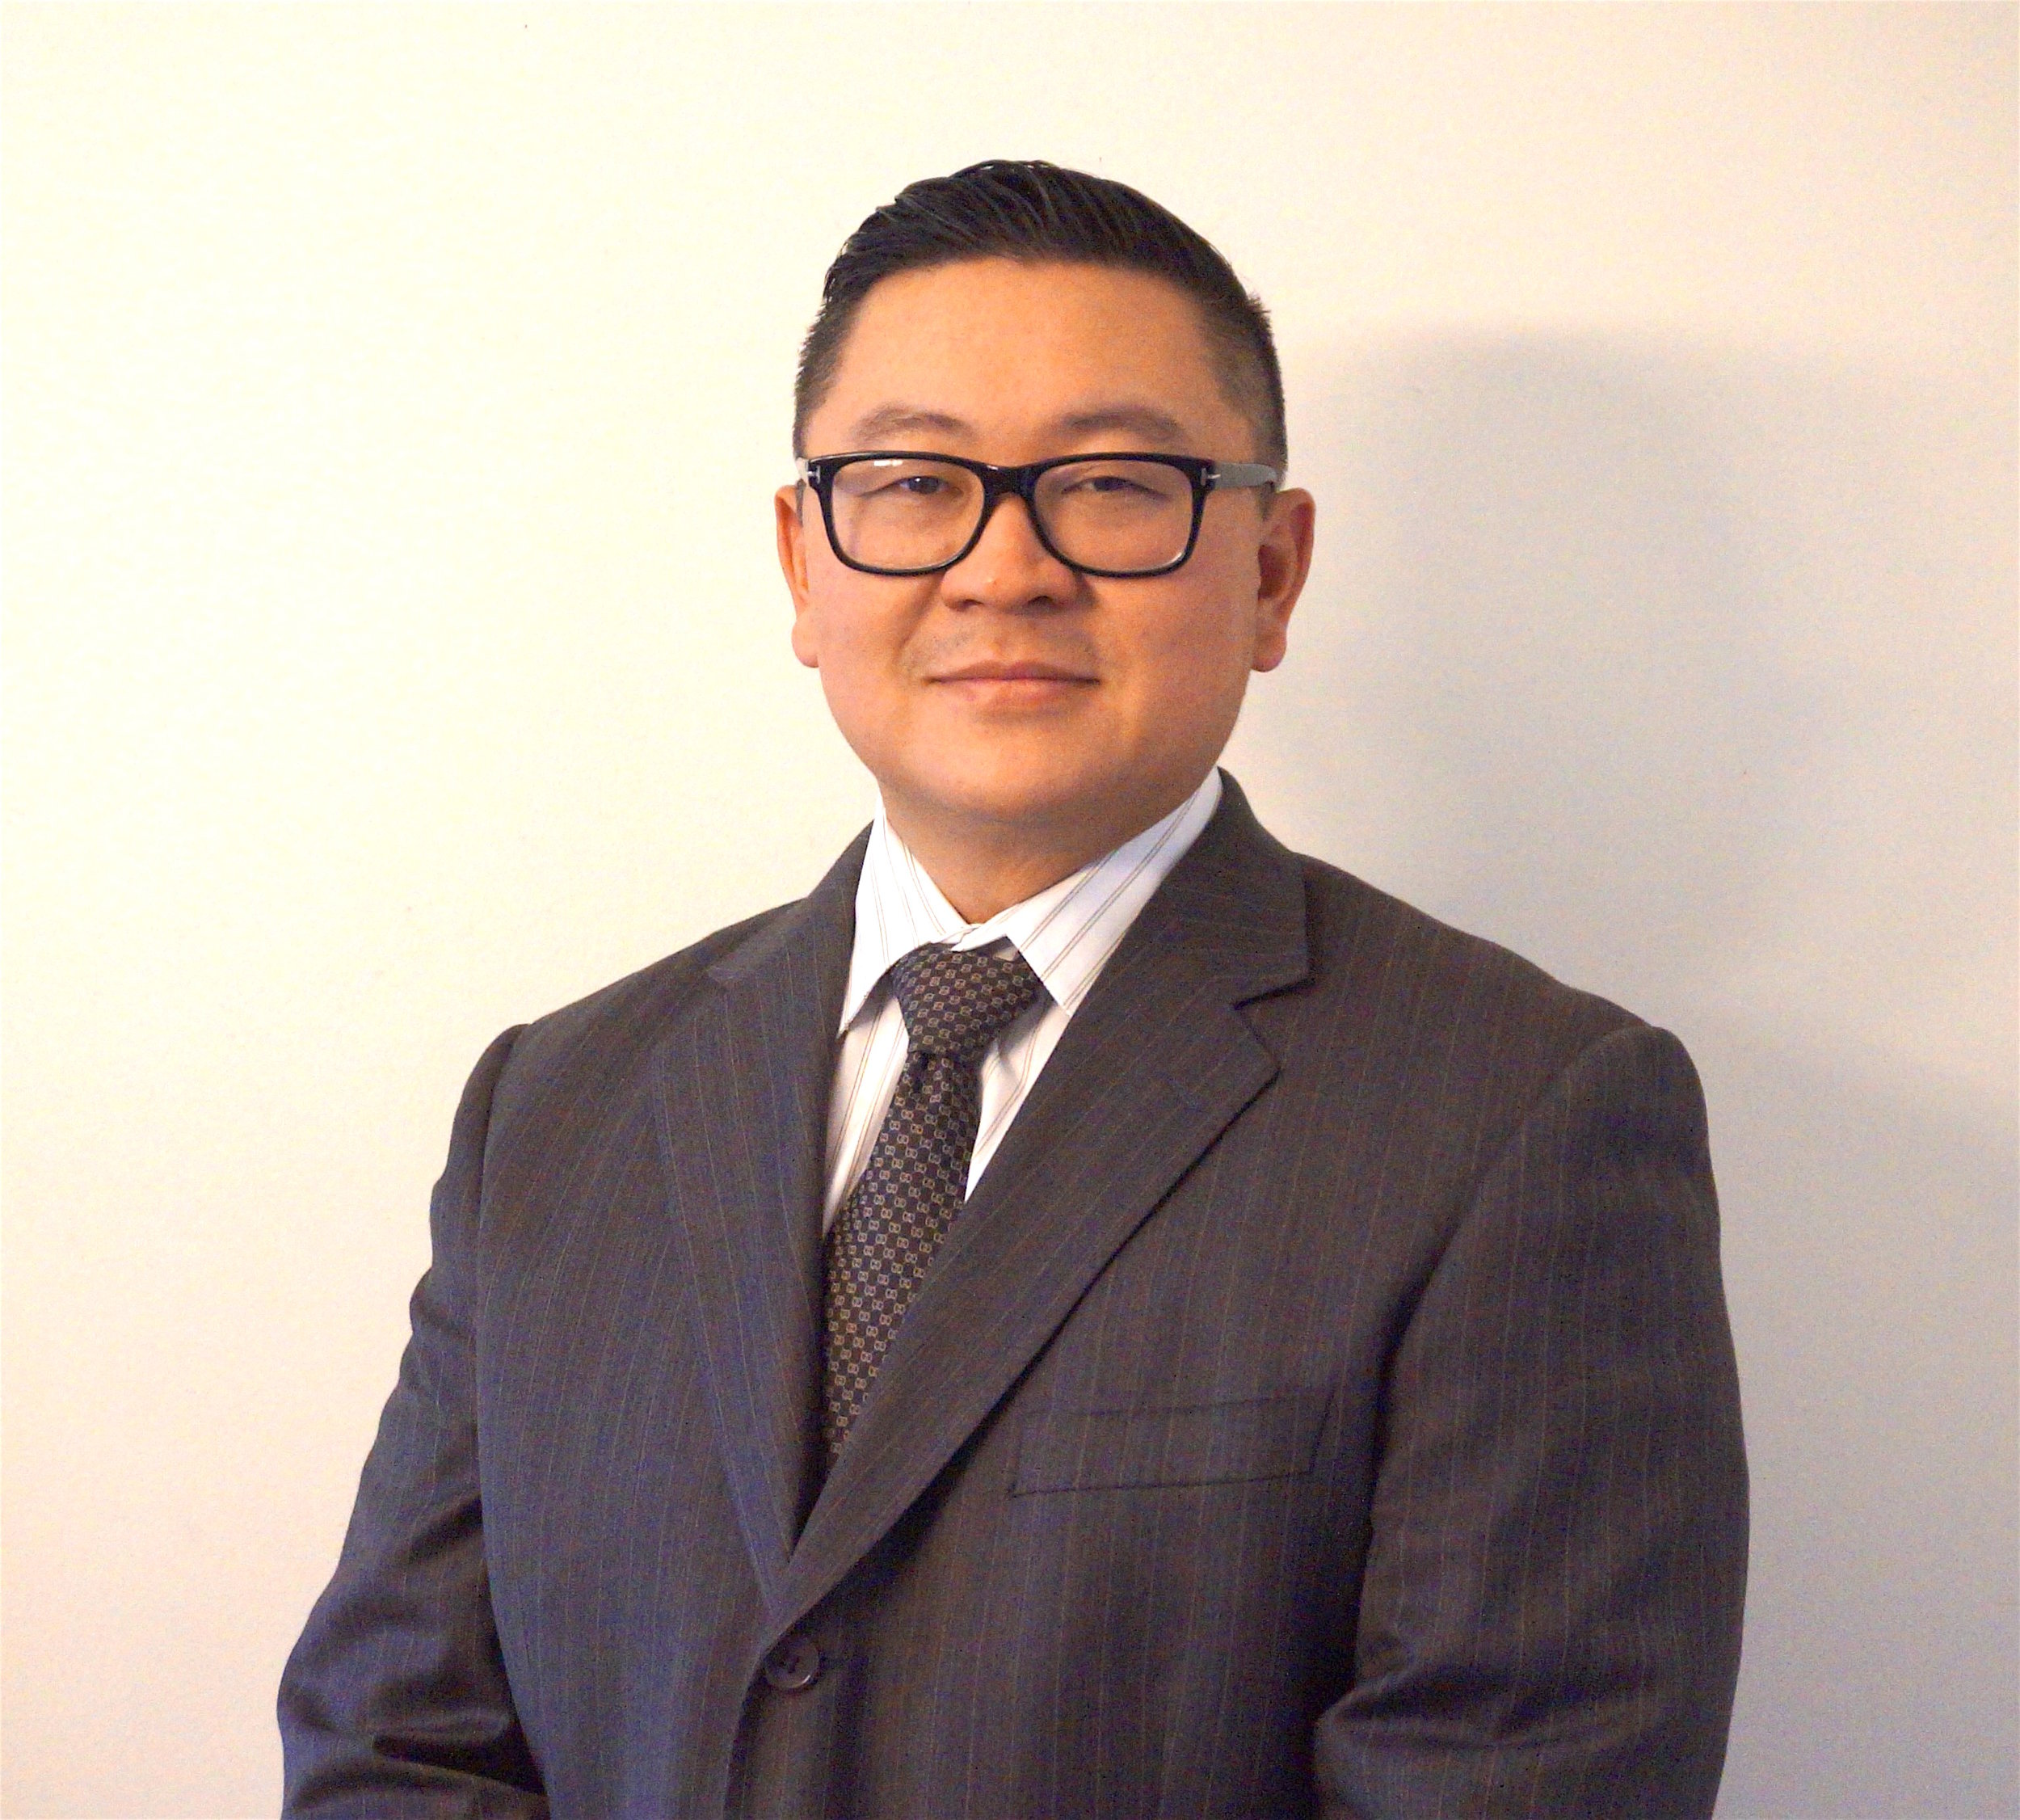 PHOTO:Economic development executive Richard Lee joins the Small Business Development Corporation of Orange County as its vice president of commercial lending. (Photo: courtesy of the SBDC of Orange County